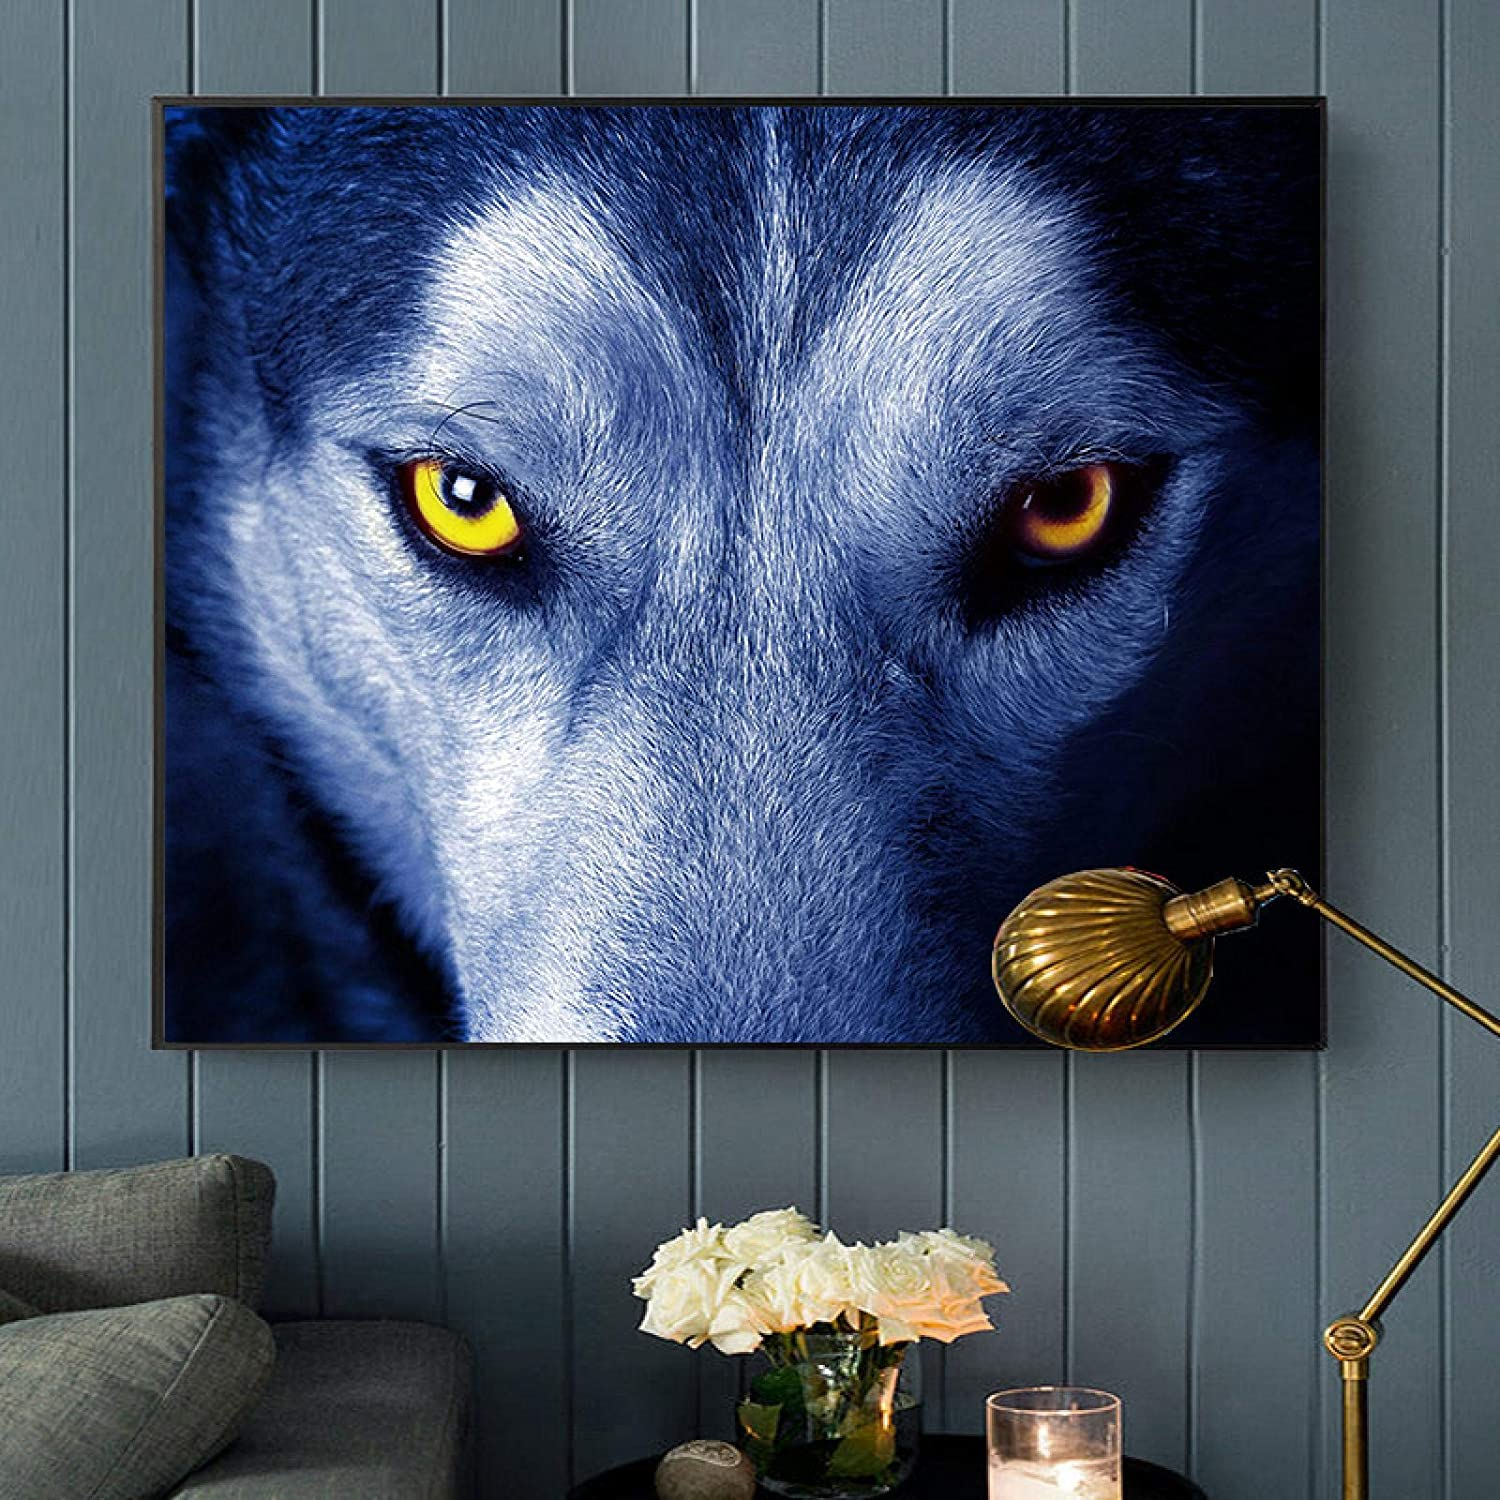 """KMMK Modern Minimalism Wolf Mural Picture Canvas Paintings Wall Art Posters and Prints Living Room Office Home Decor 15.7""""x19.6""""(40x50cm) Frameless"""